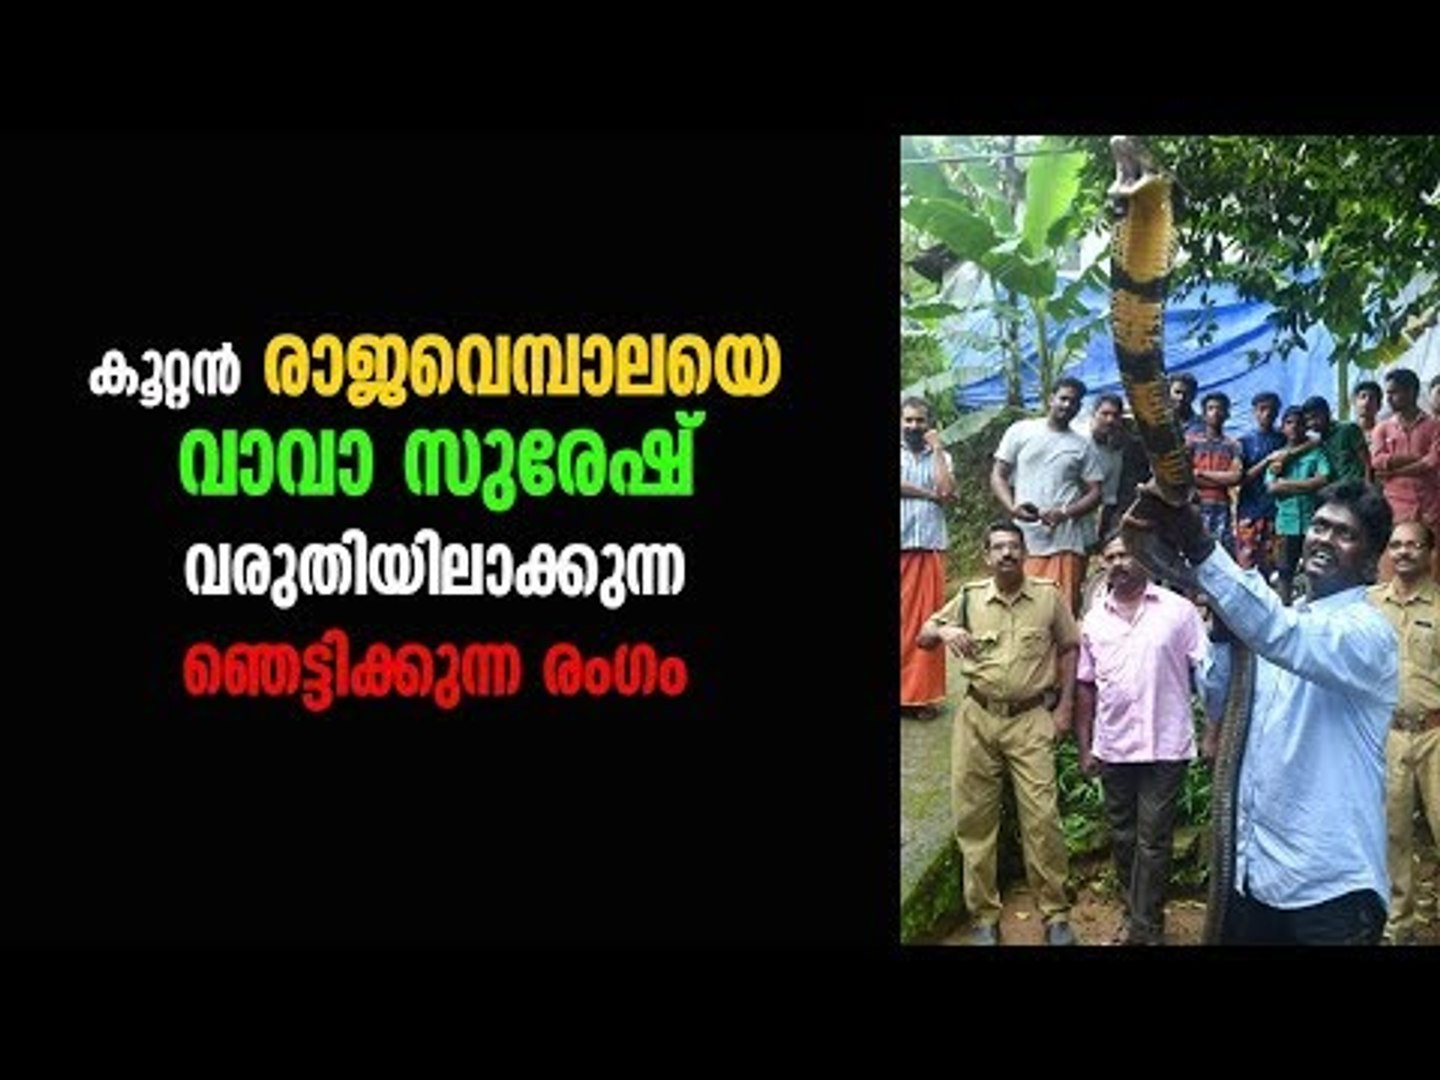 Vava Suresh Catches King Cobra! Deepika News